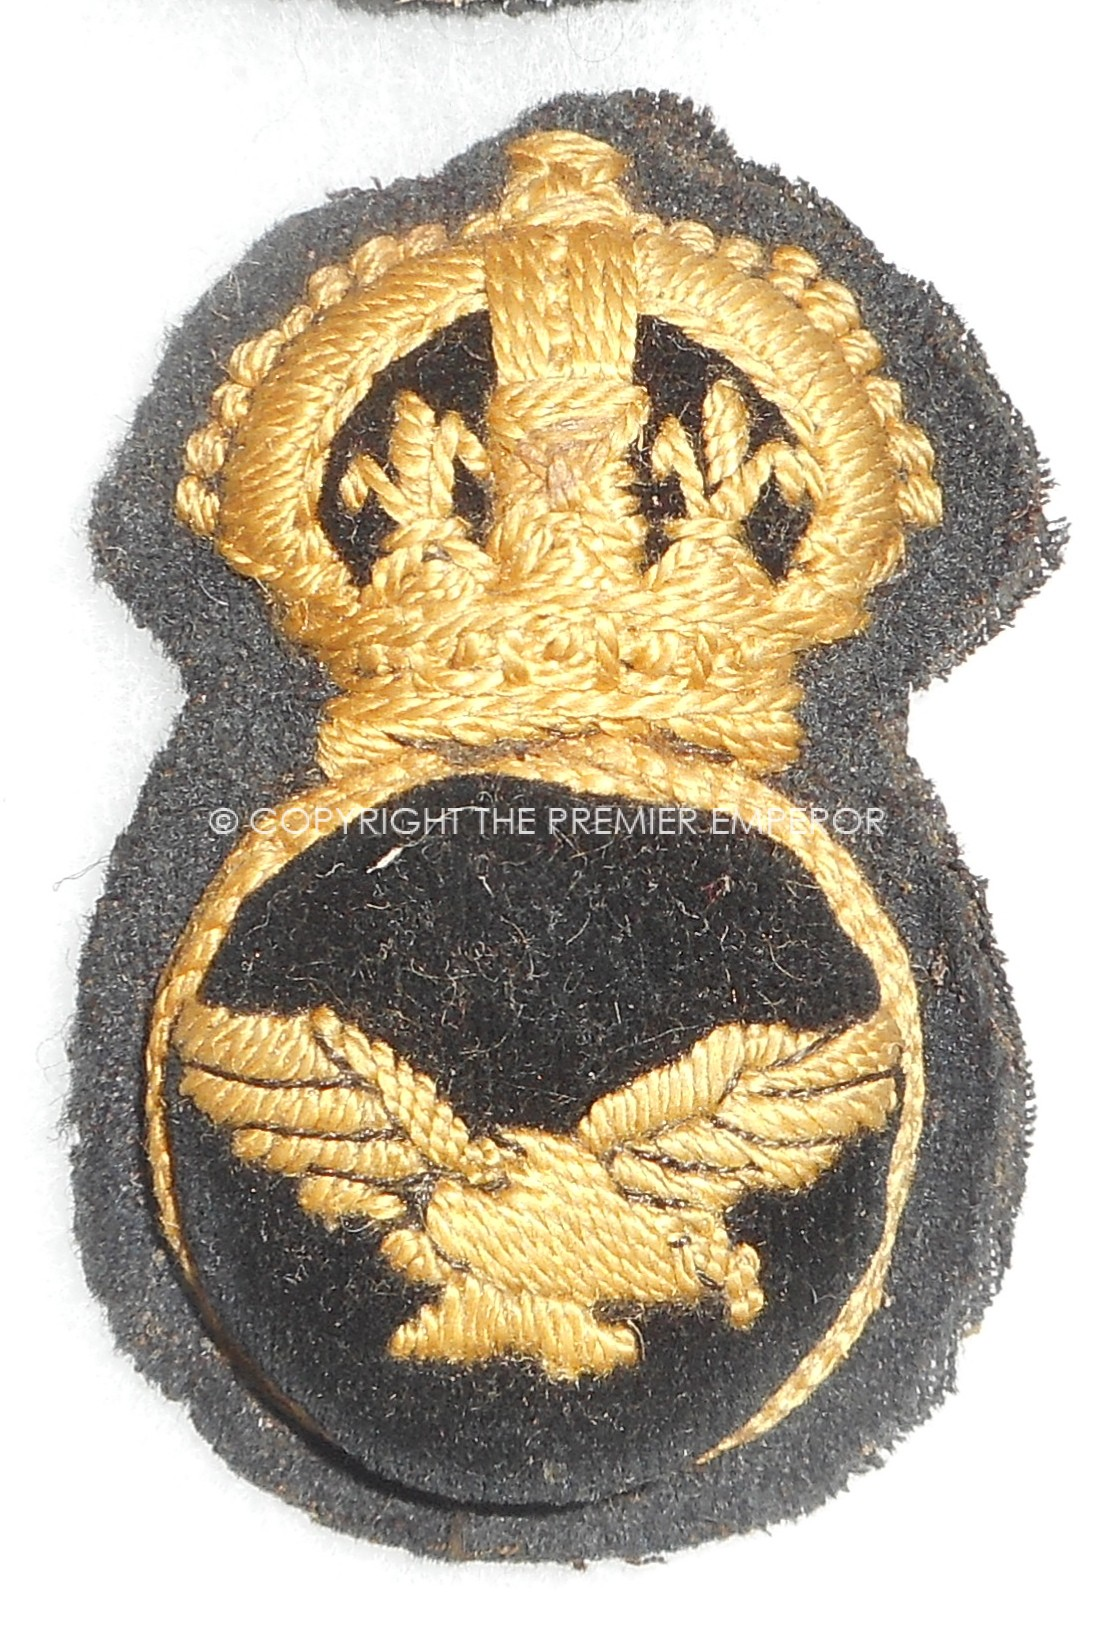 BRITISH ROYAL AIR FORCE (RAF) NCO'S CAP INSIGNIA 1918